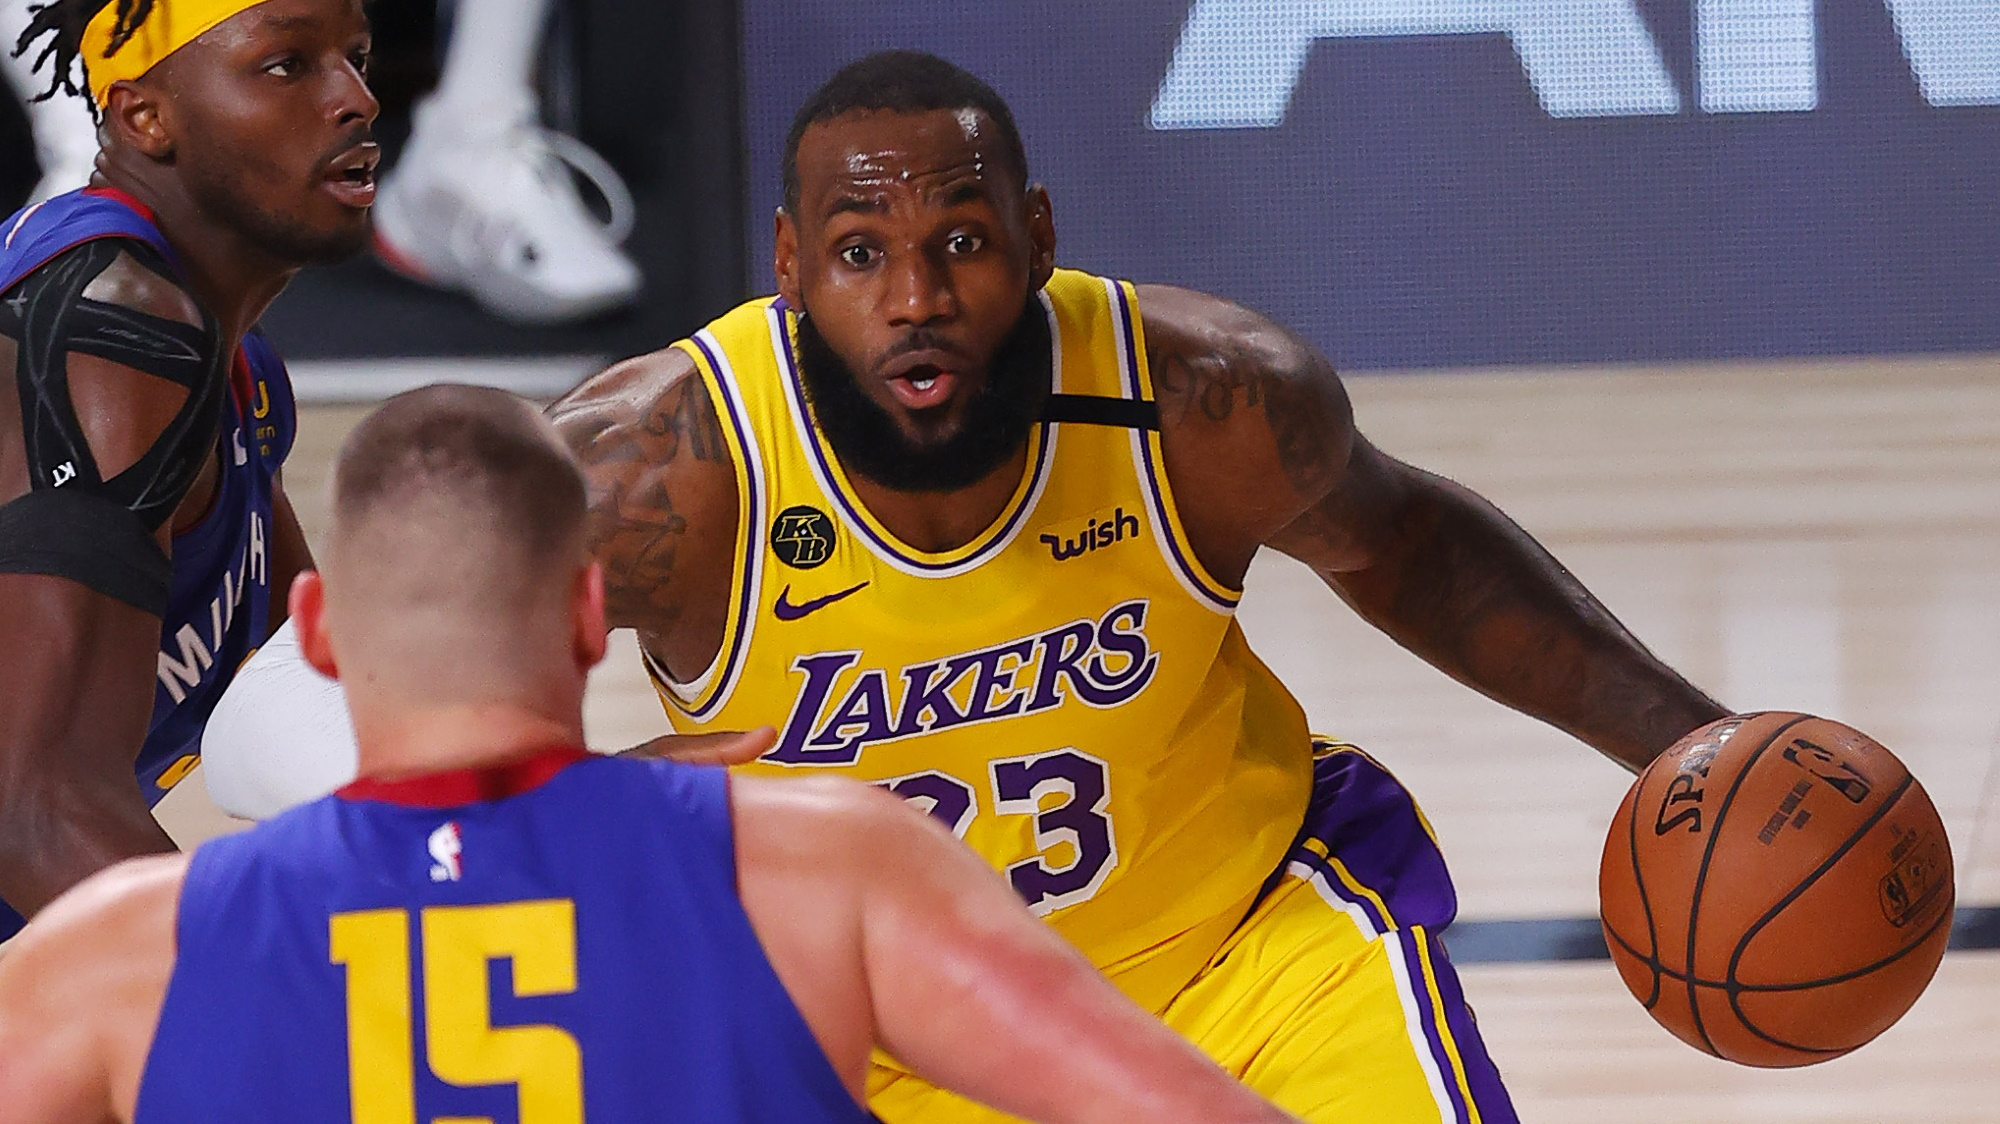 Lakers vs Nuggets live stream: how to watch 2020 NBA playoffs game 2 from anywhere thumbnail